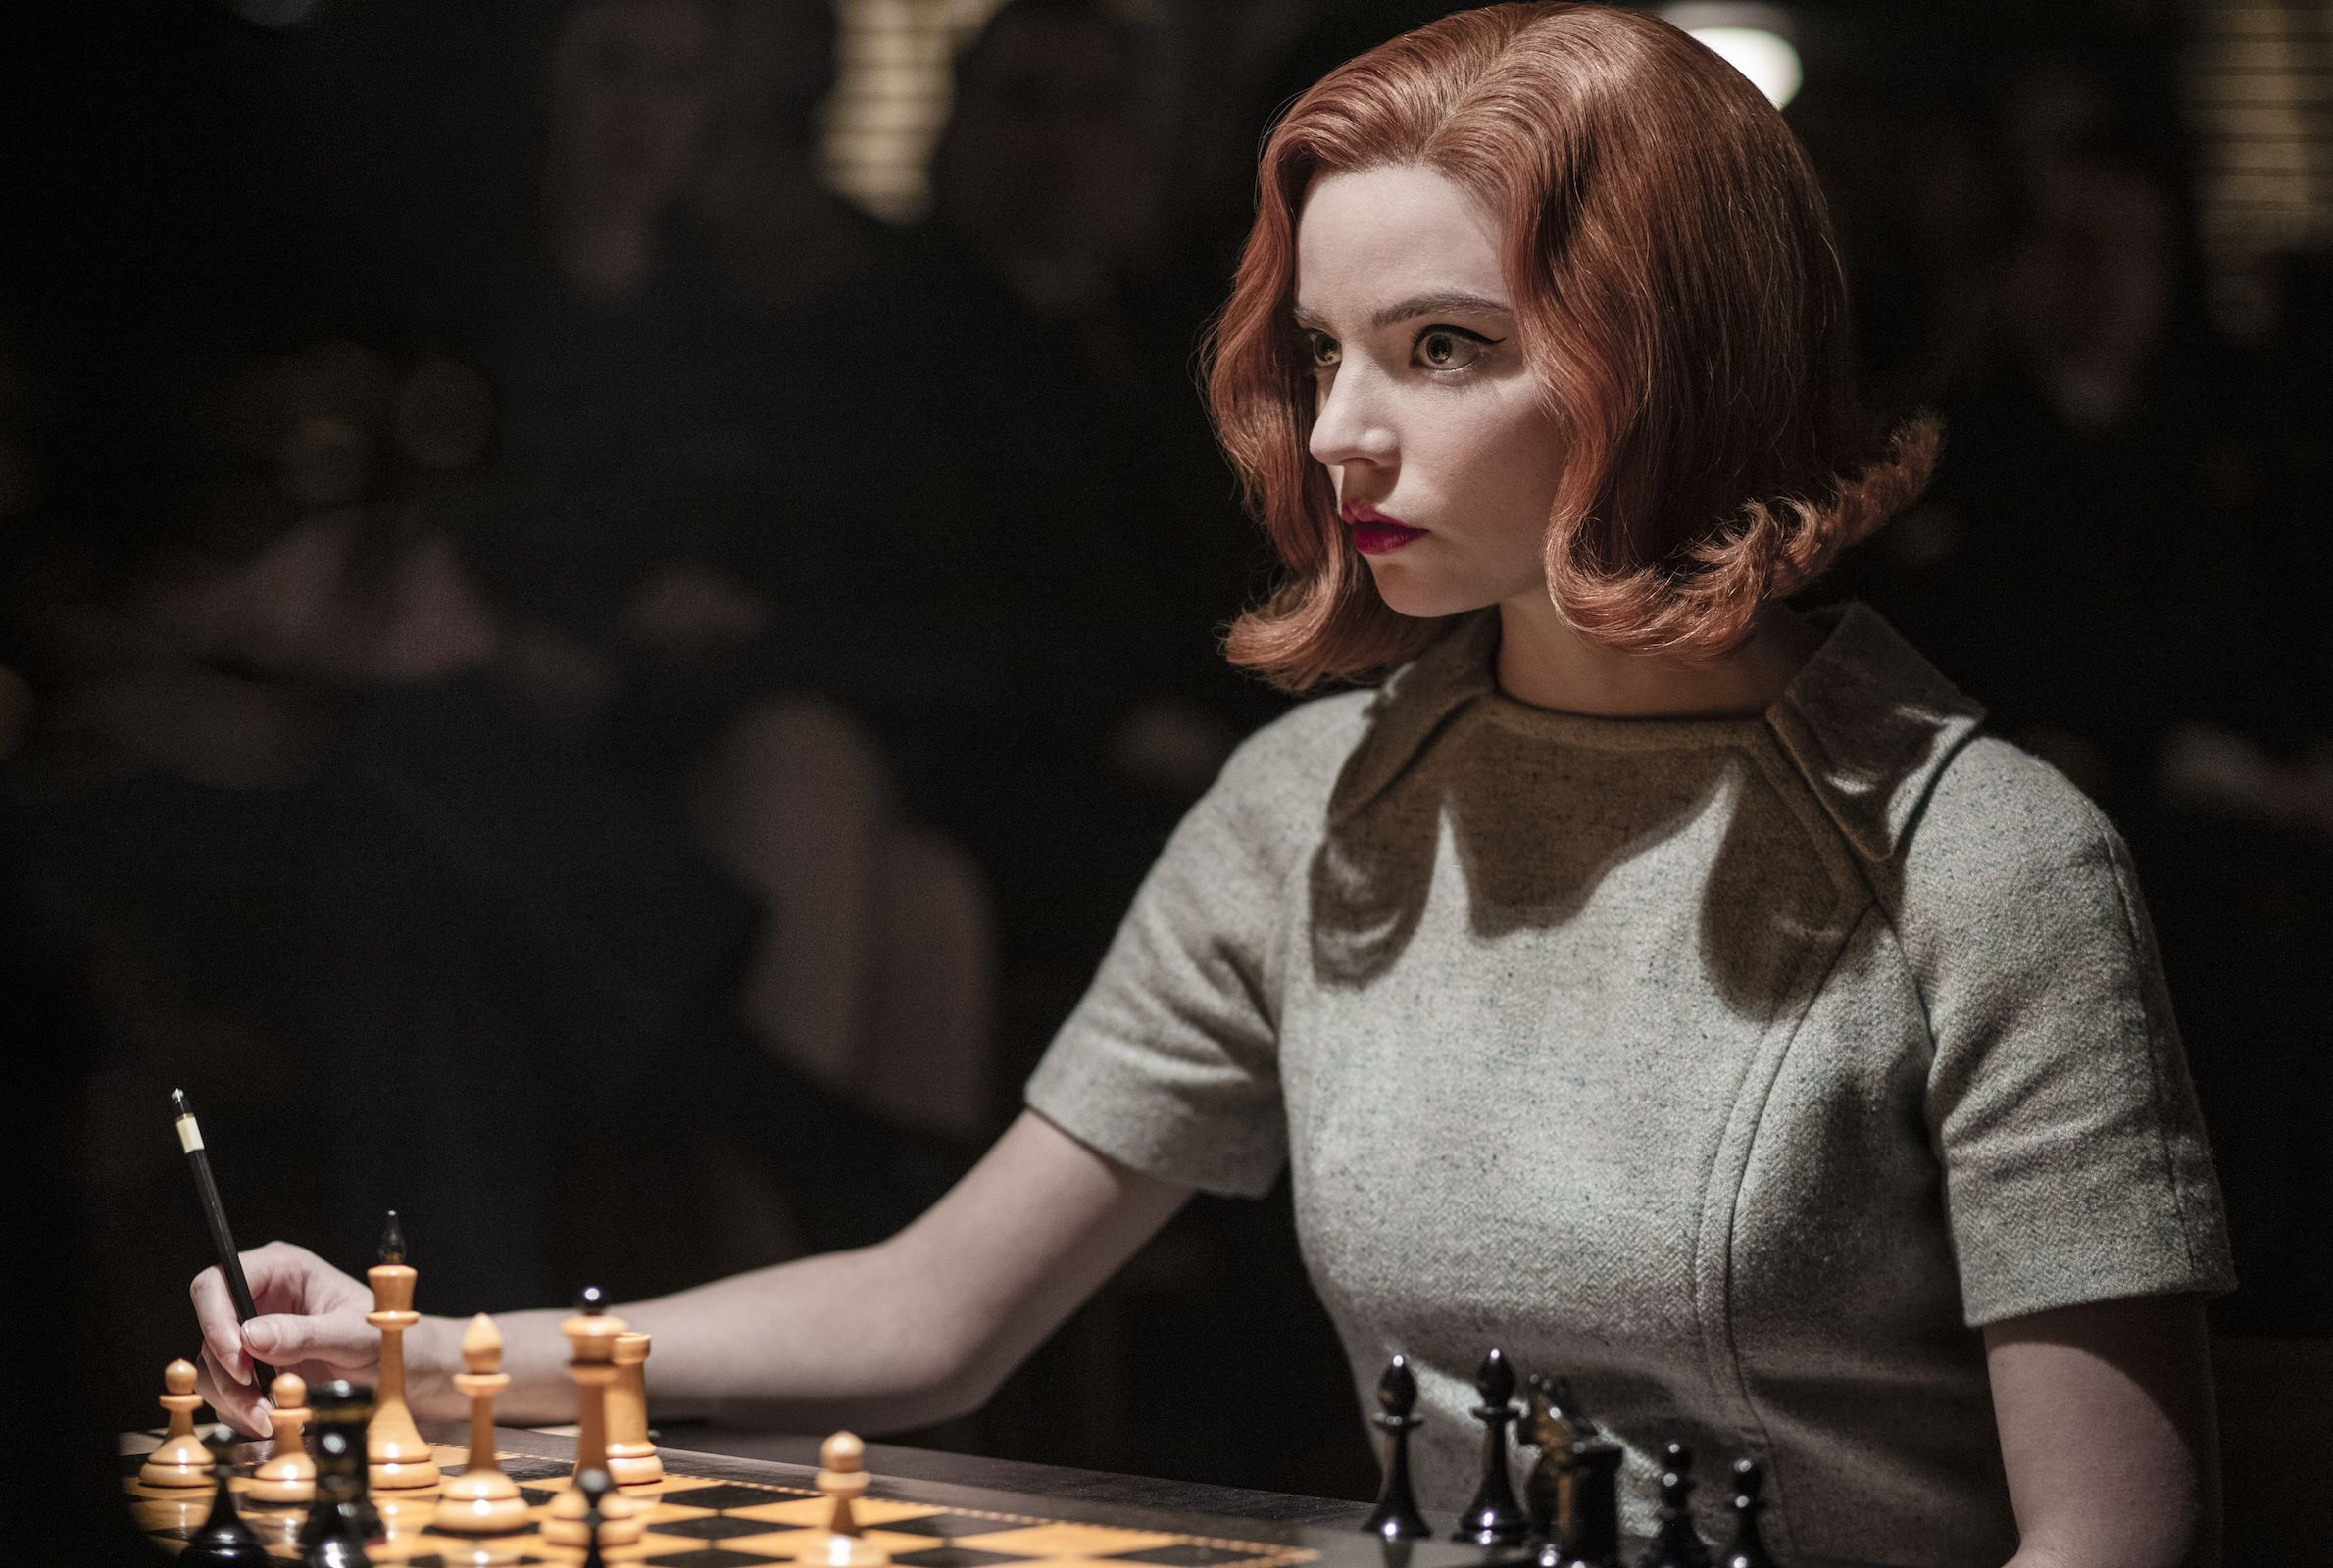 Netflix S The Queen S Gambit Causes Surge In Chess Interest Mental Floss